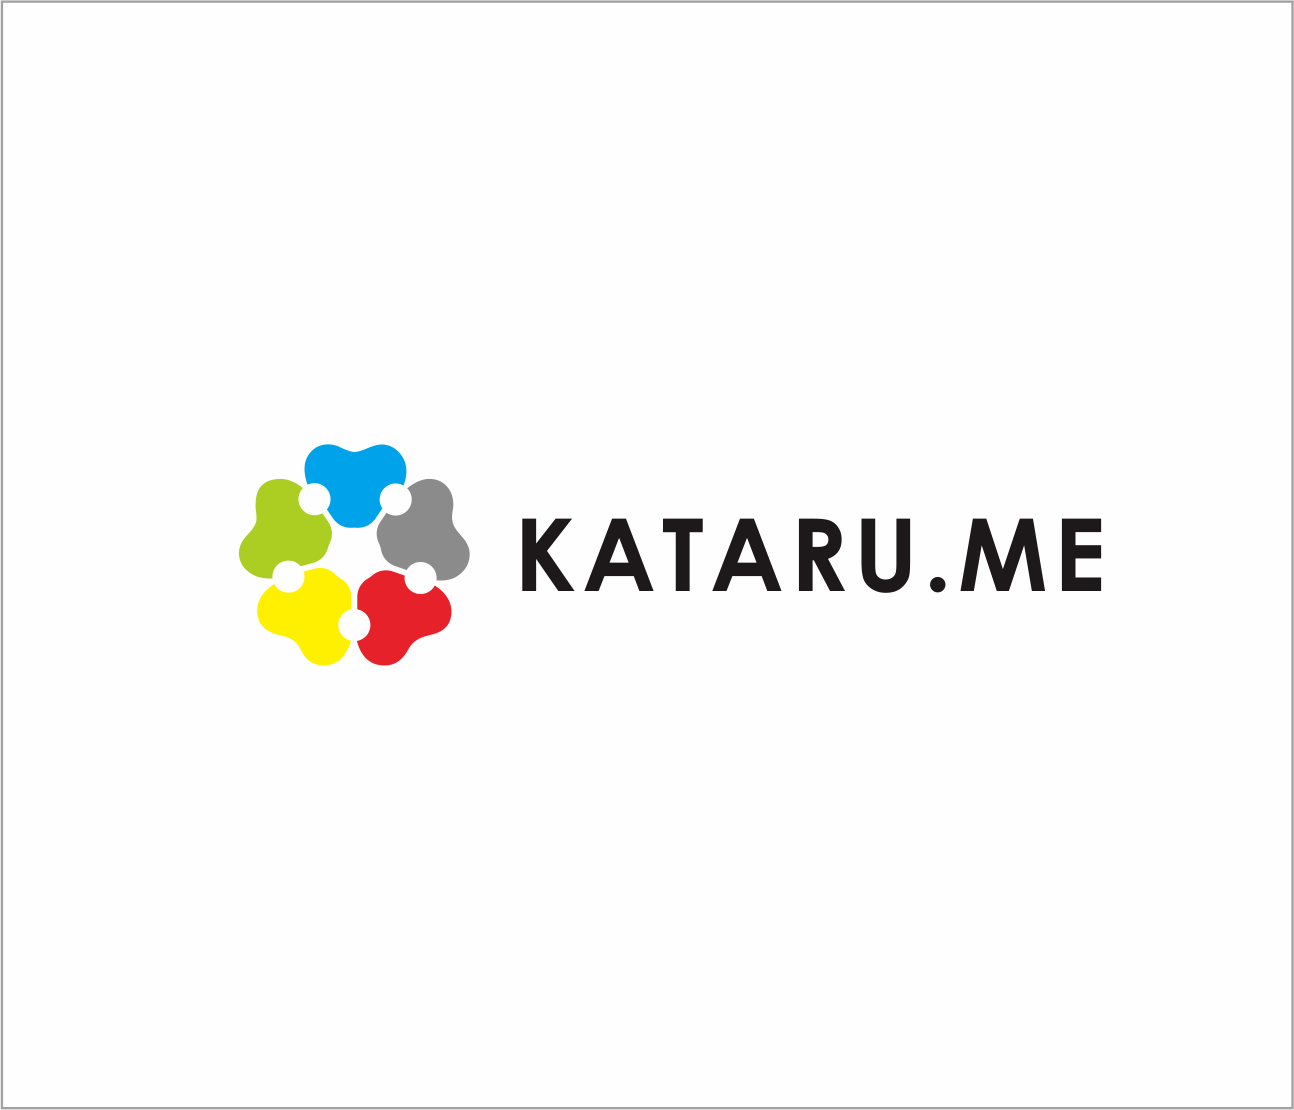 Logo Design by Armada Jamaluddin - Entry No. 26 in the Logo Design Contest Inspiring Logo Design for KATARU.ME.